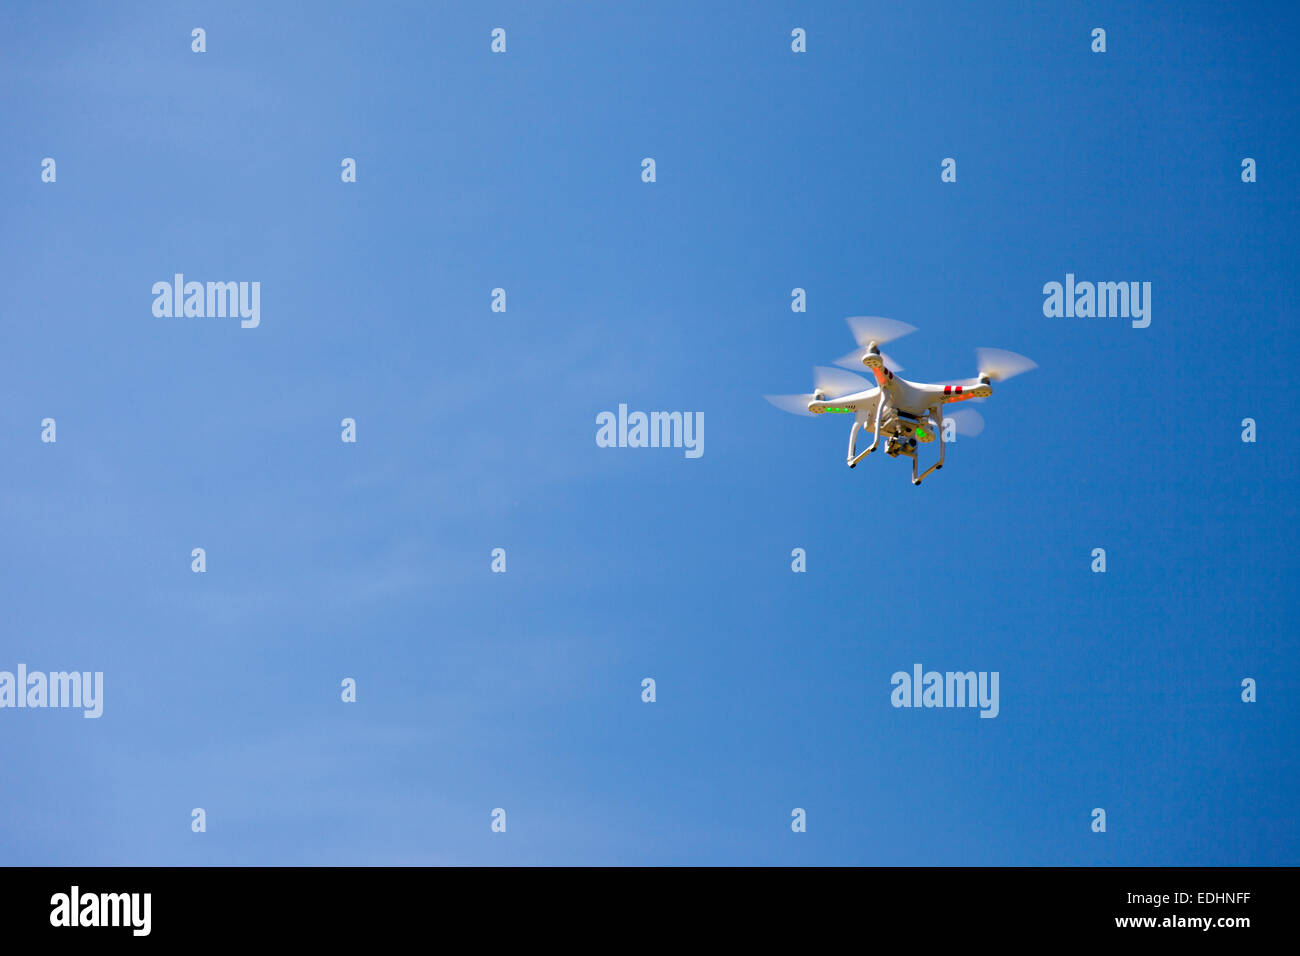 Lone Drone in a clear blue sky - Stock Image